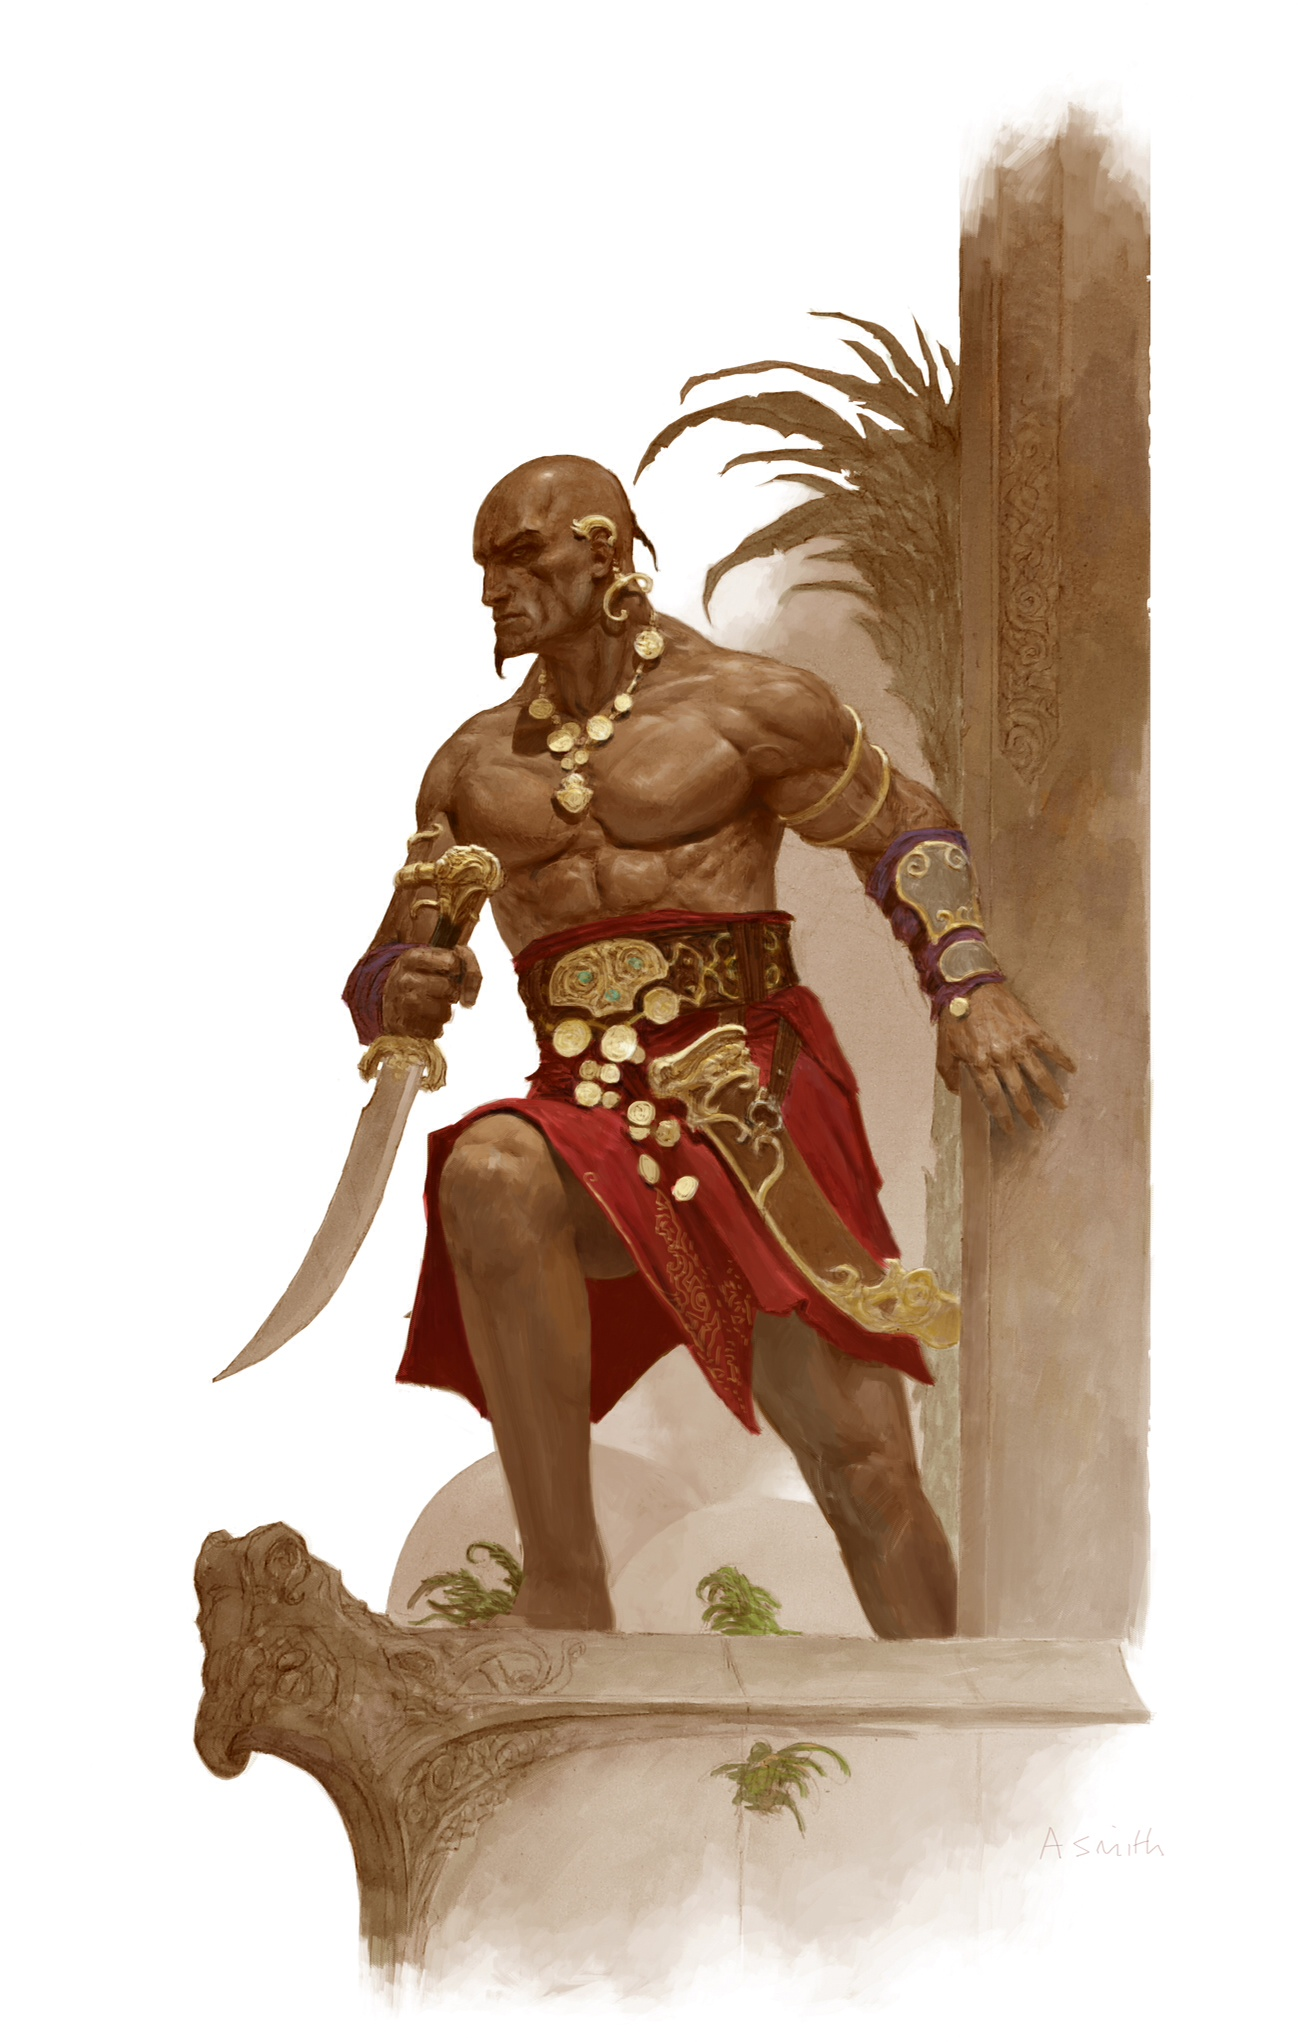 Conan: The Legend - Shevastas (Copyright/Image: Monolith)